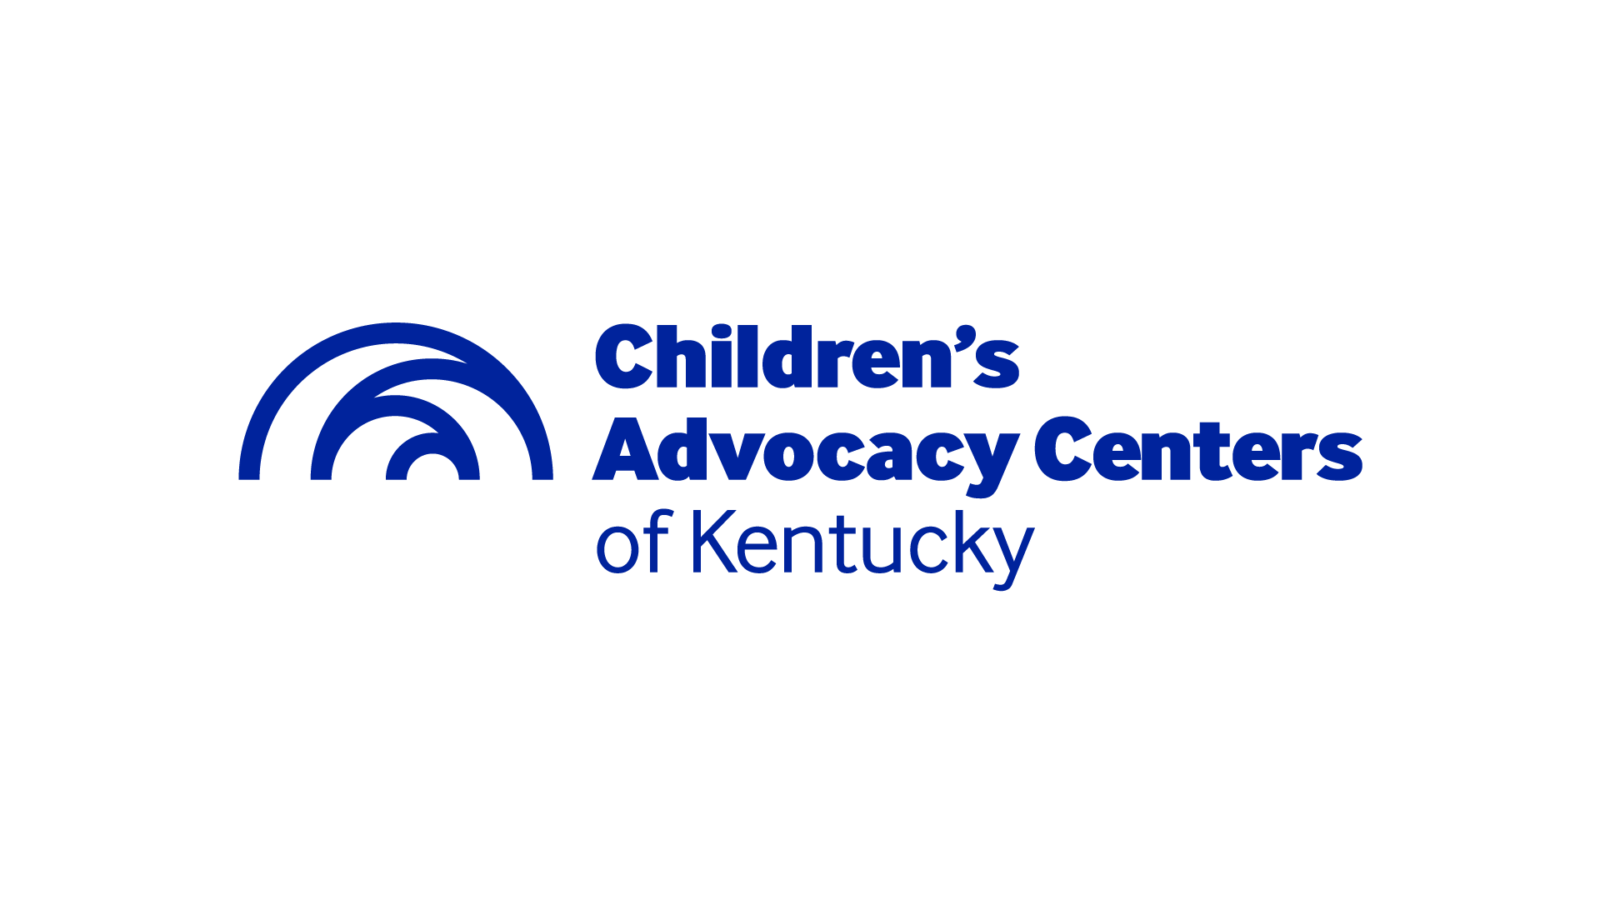 Children's Advocacy Centers of Kentucky